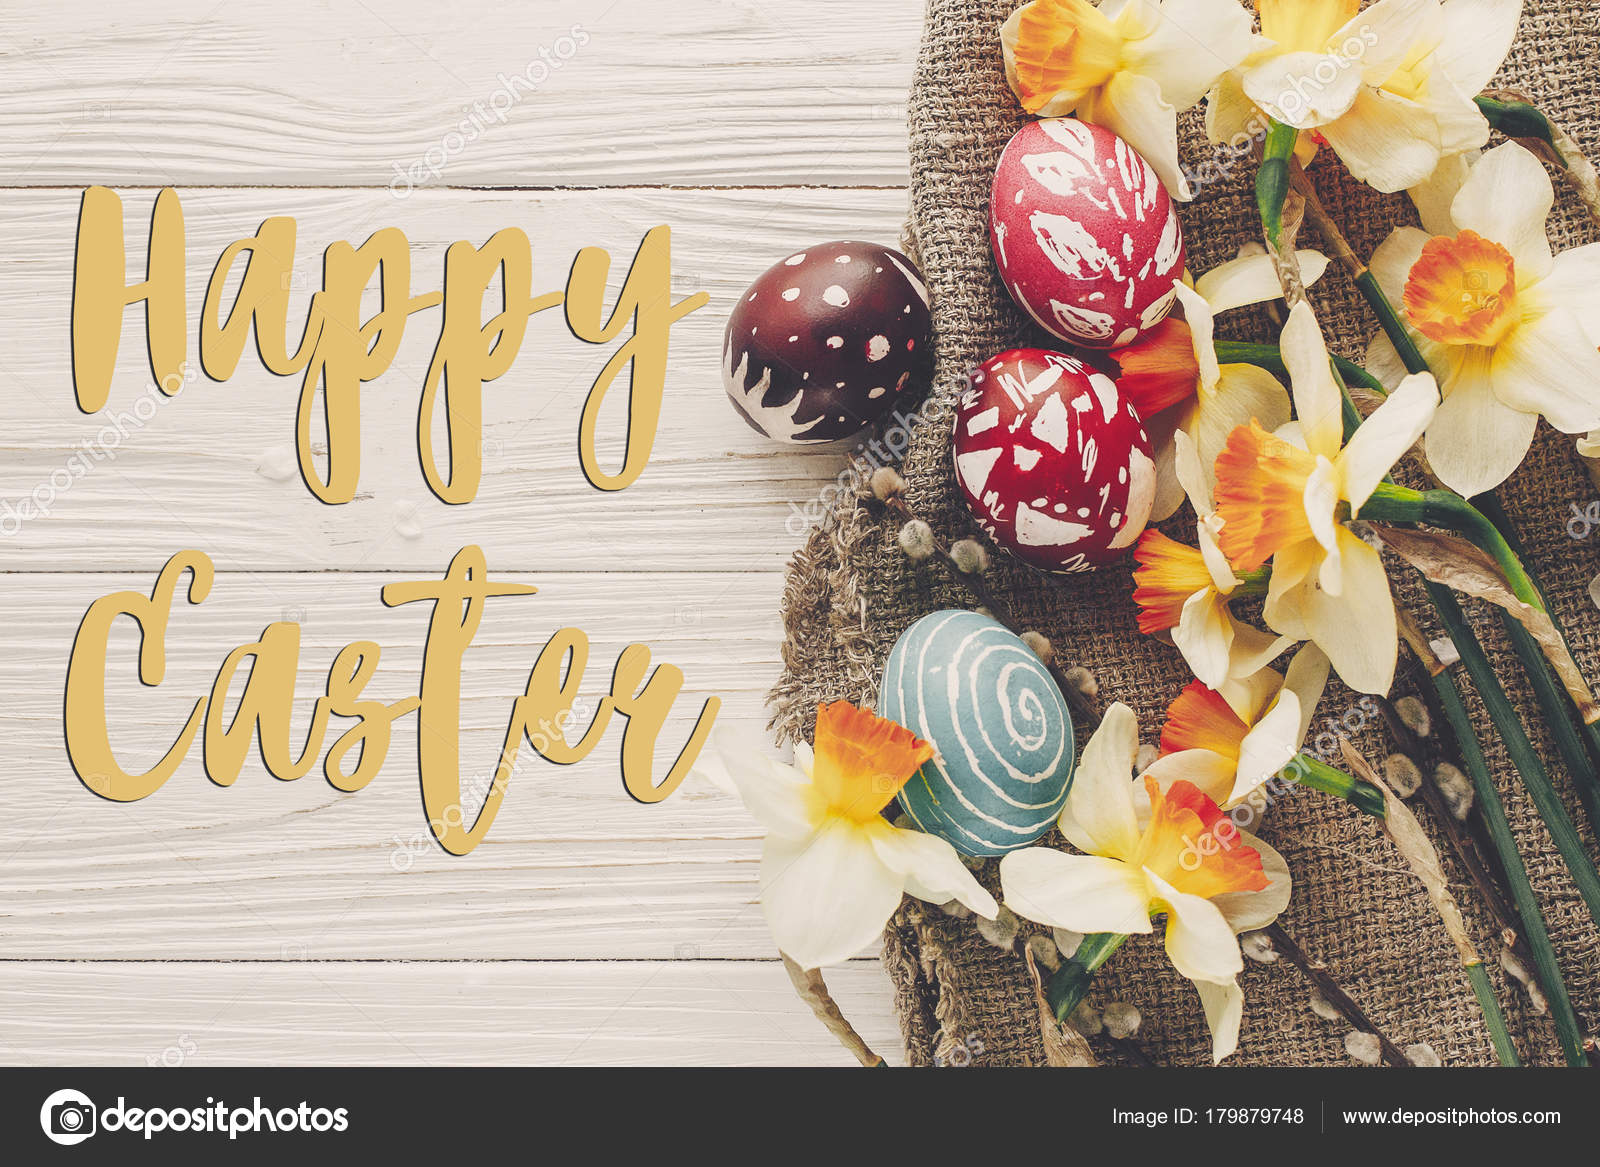 Happy Easter Text Flat Lay Flowers Daffodils Stylish Eggs Rustic